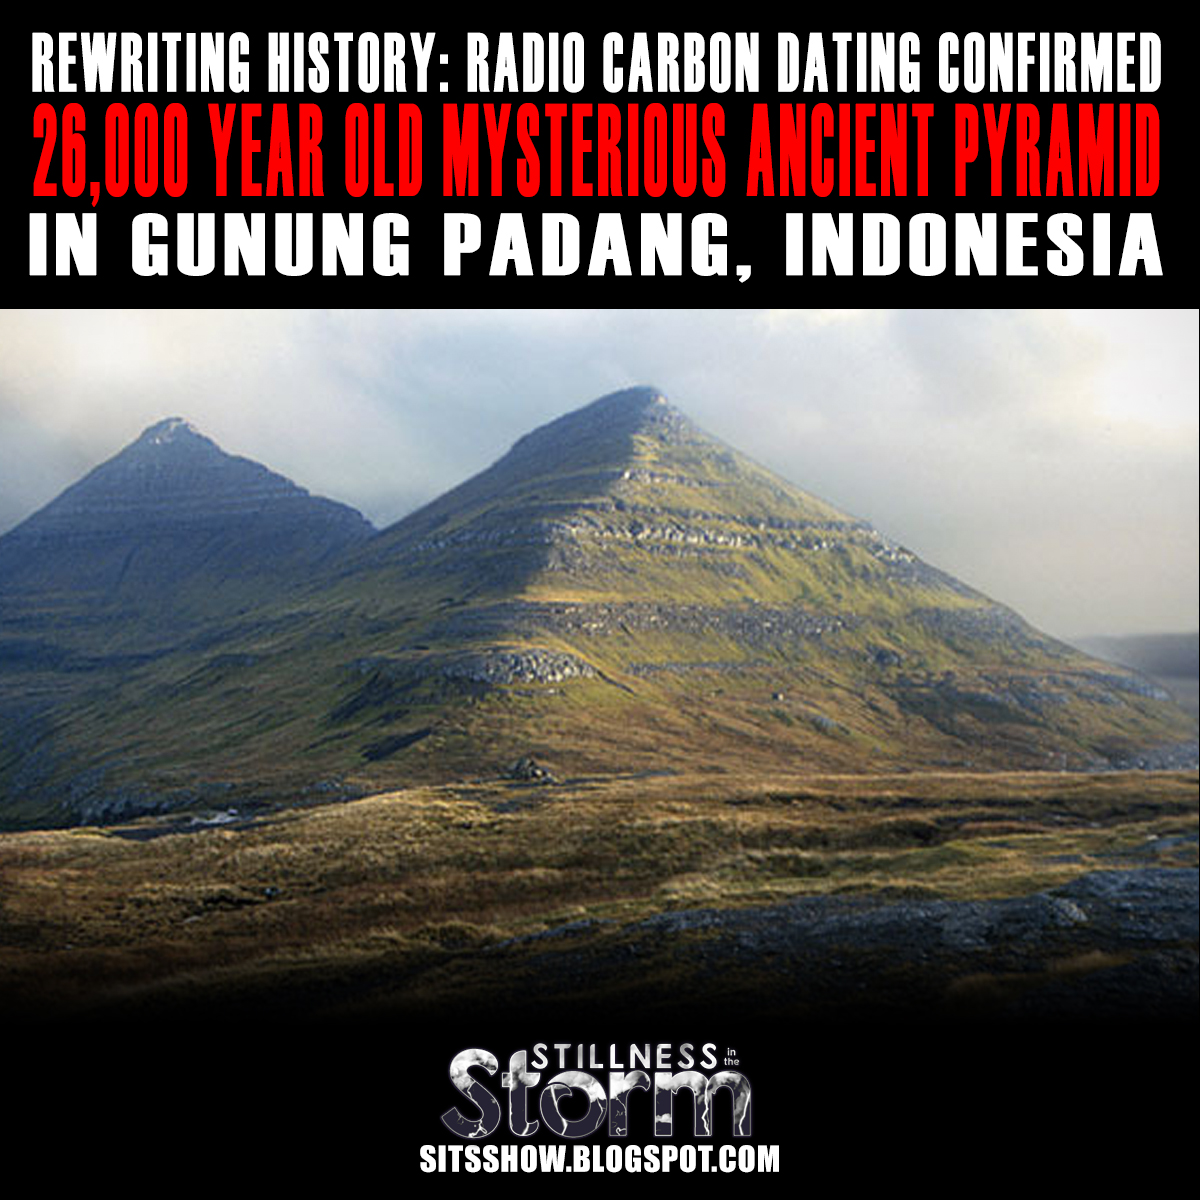 padang dating site Just run a google search using the words: gunung padang megalithic site carbon dating the site at 5,000 years does not challenge anything it is the older.